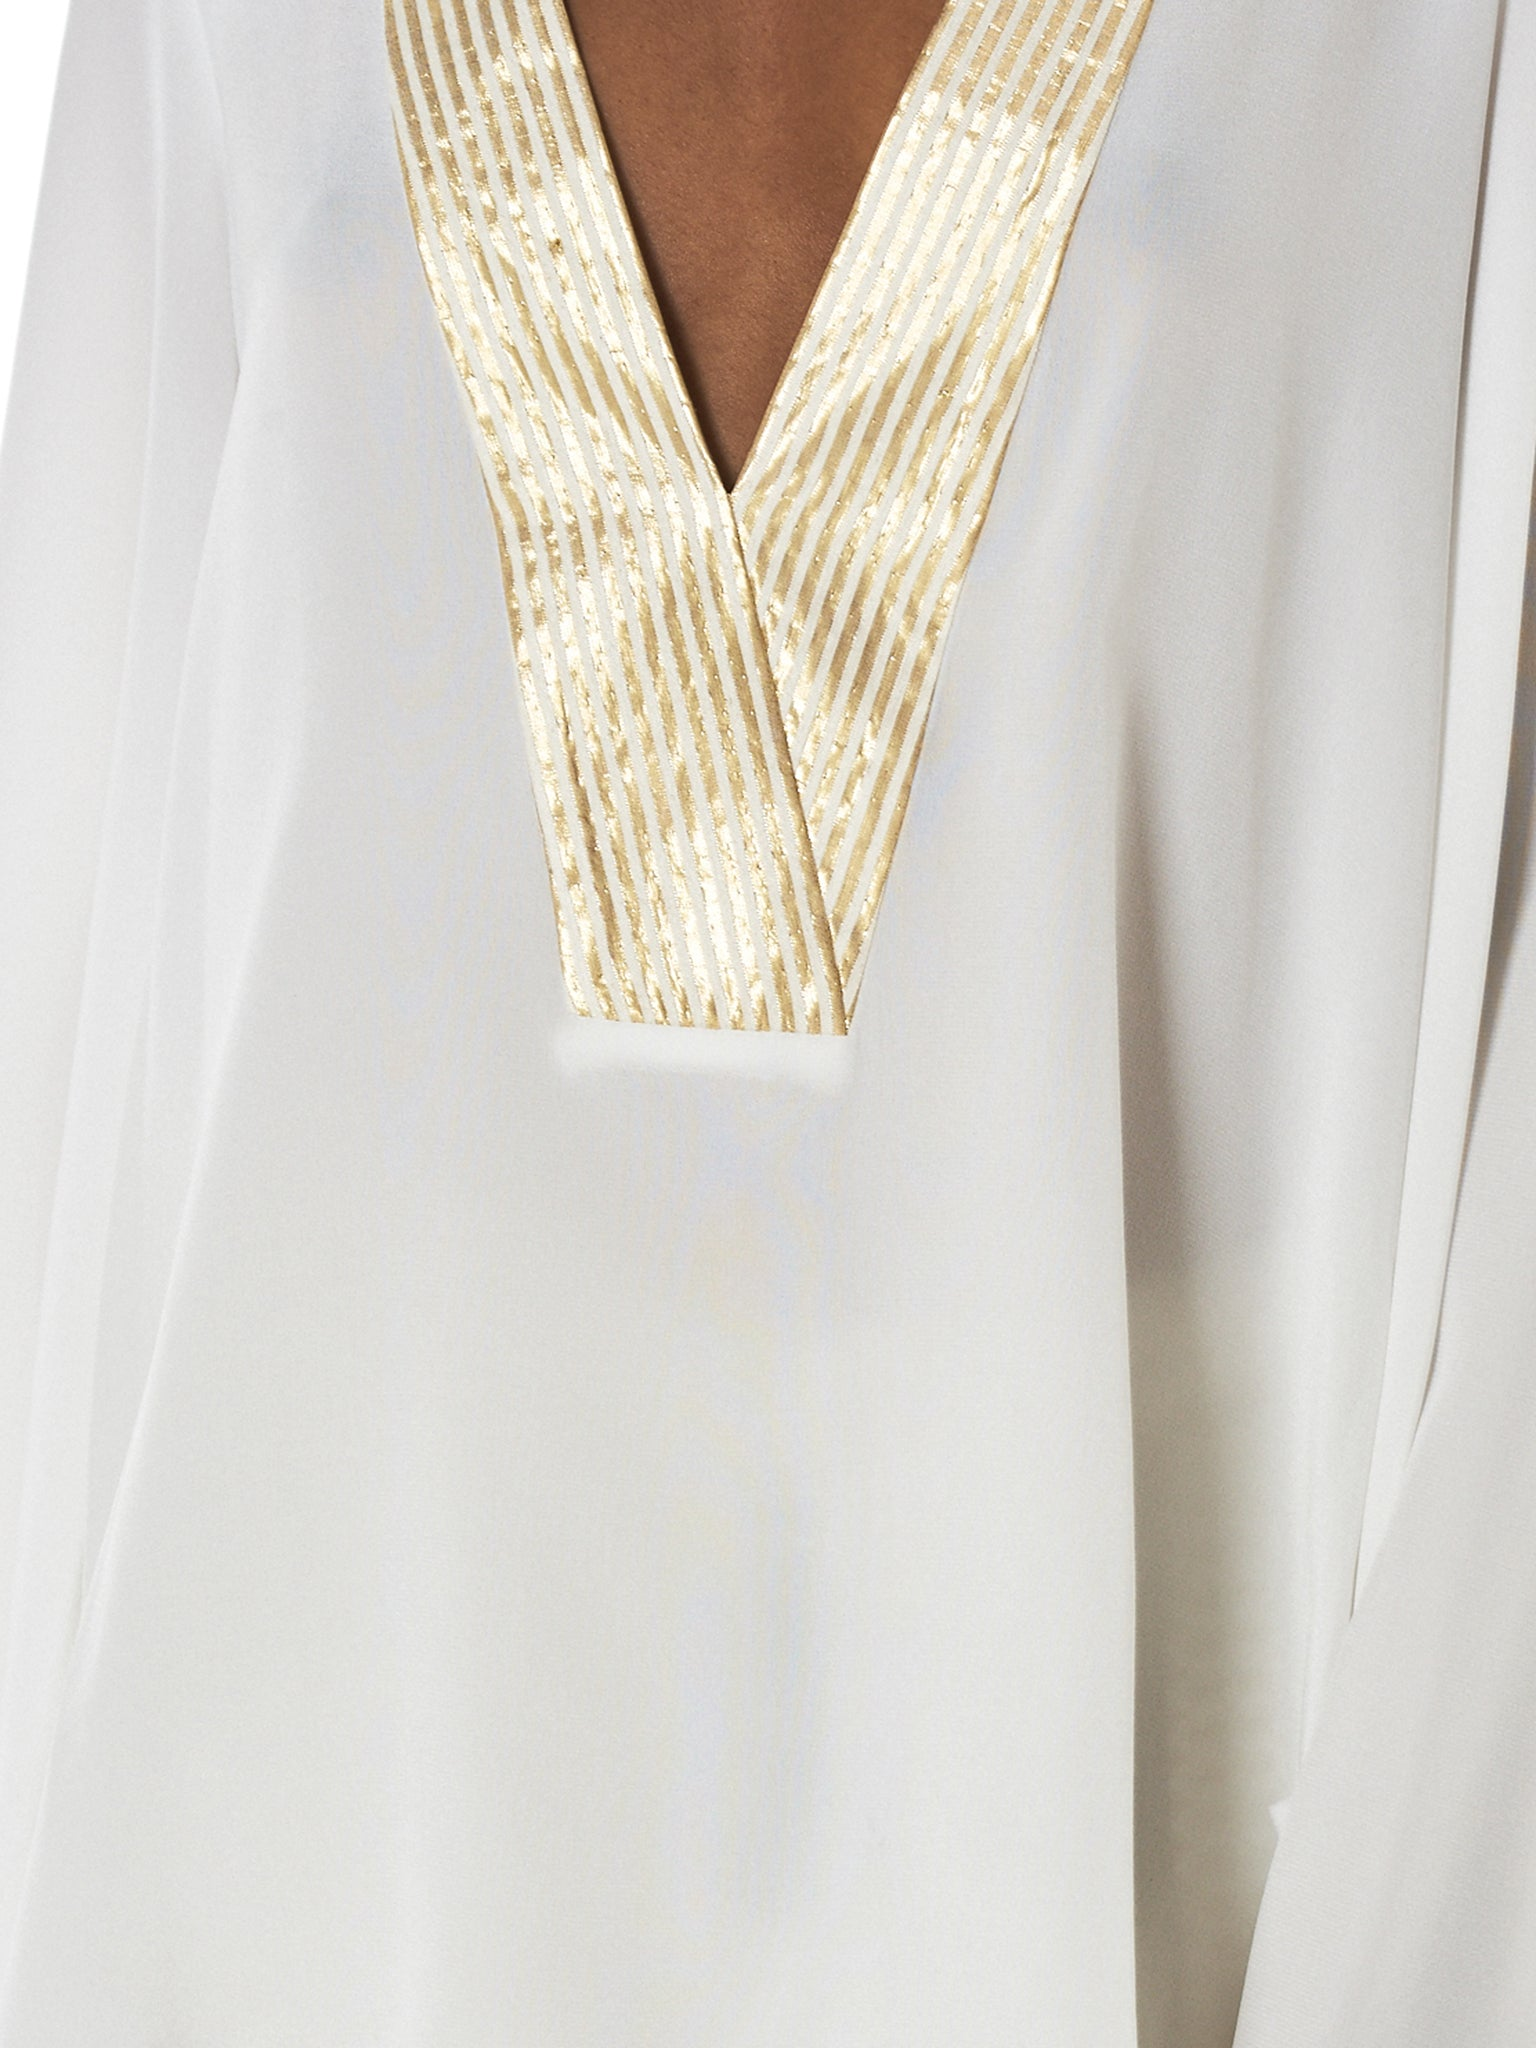 Zeus + Dione Gold Striped Blouse - Hlorenzo Detail 2